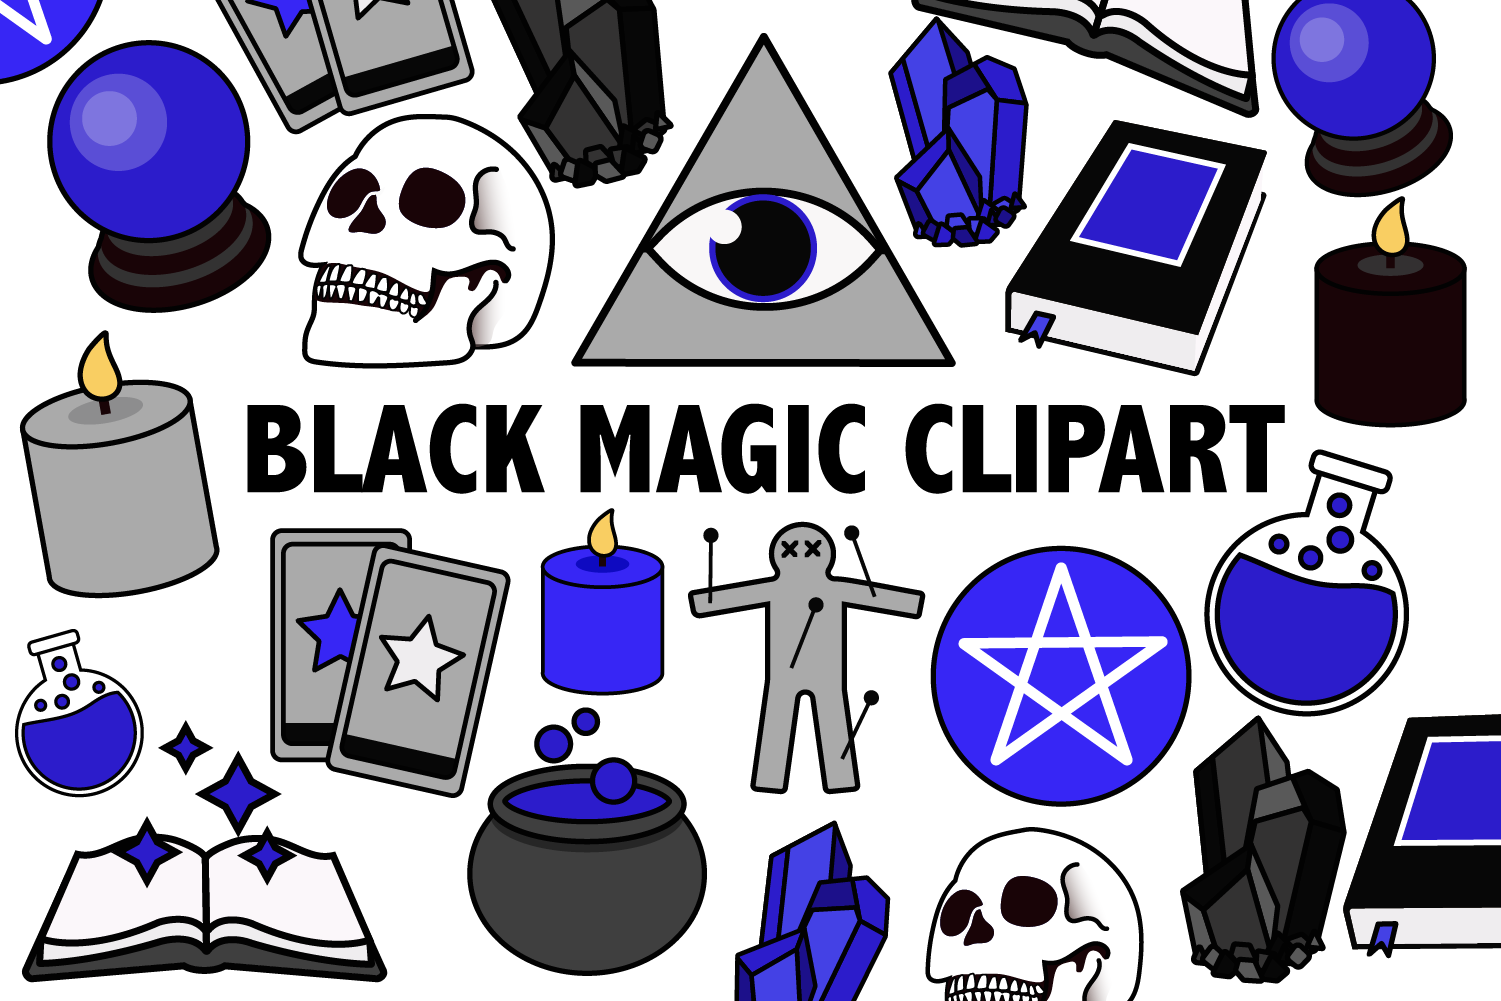 Download Free Black Magic Clipart Graphic By Mine Eyes Design Creative Fabrica for Cricut Explore, Silhouette and other cutting machines.